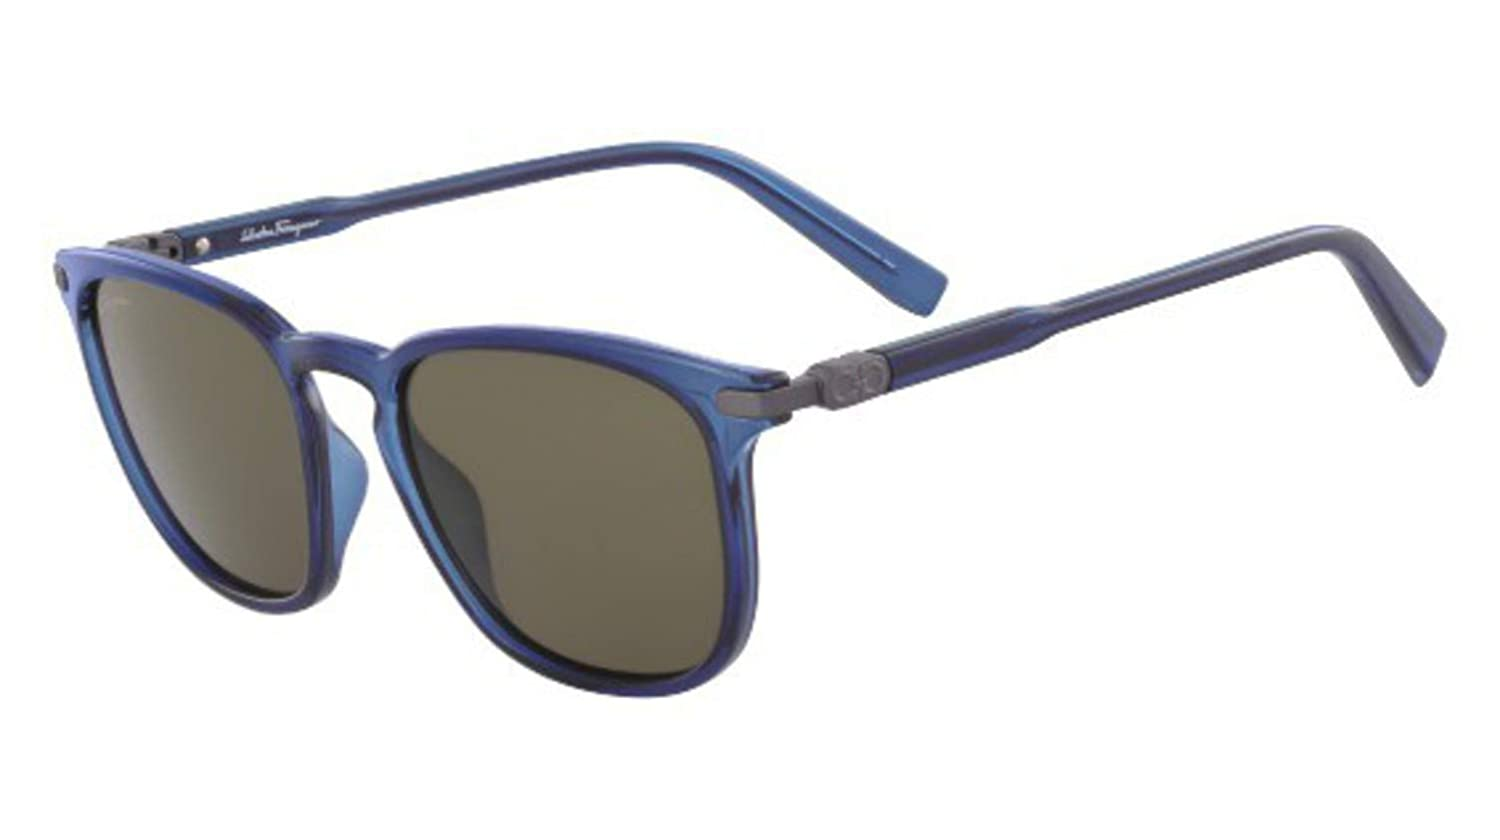 Amazon.com: Gafas de sol FERRAGAMO SF 881 S 414 azul: Clothing